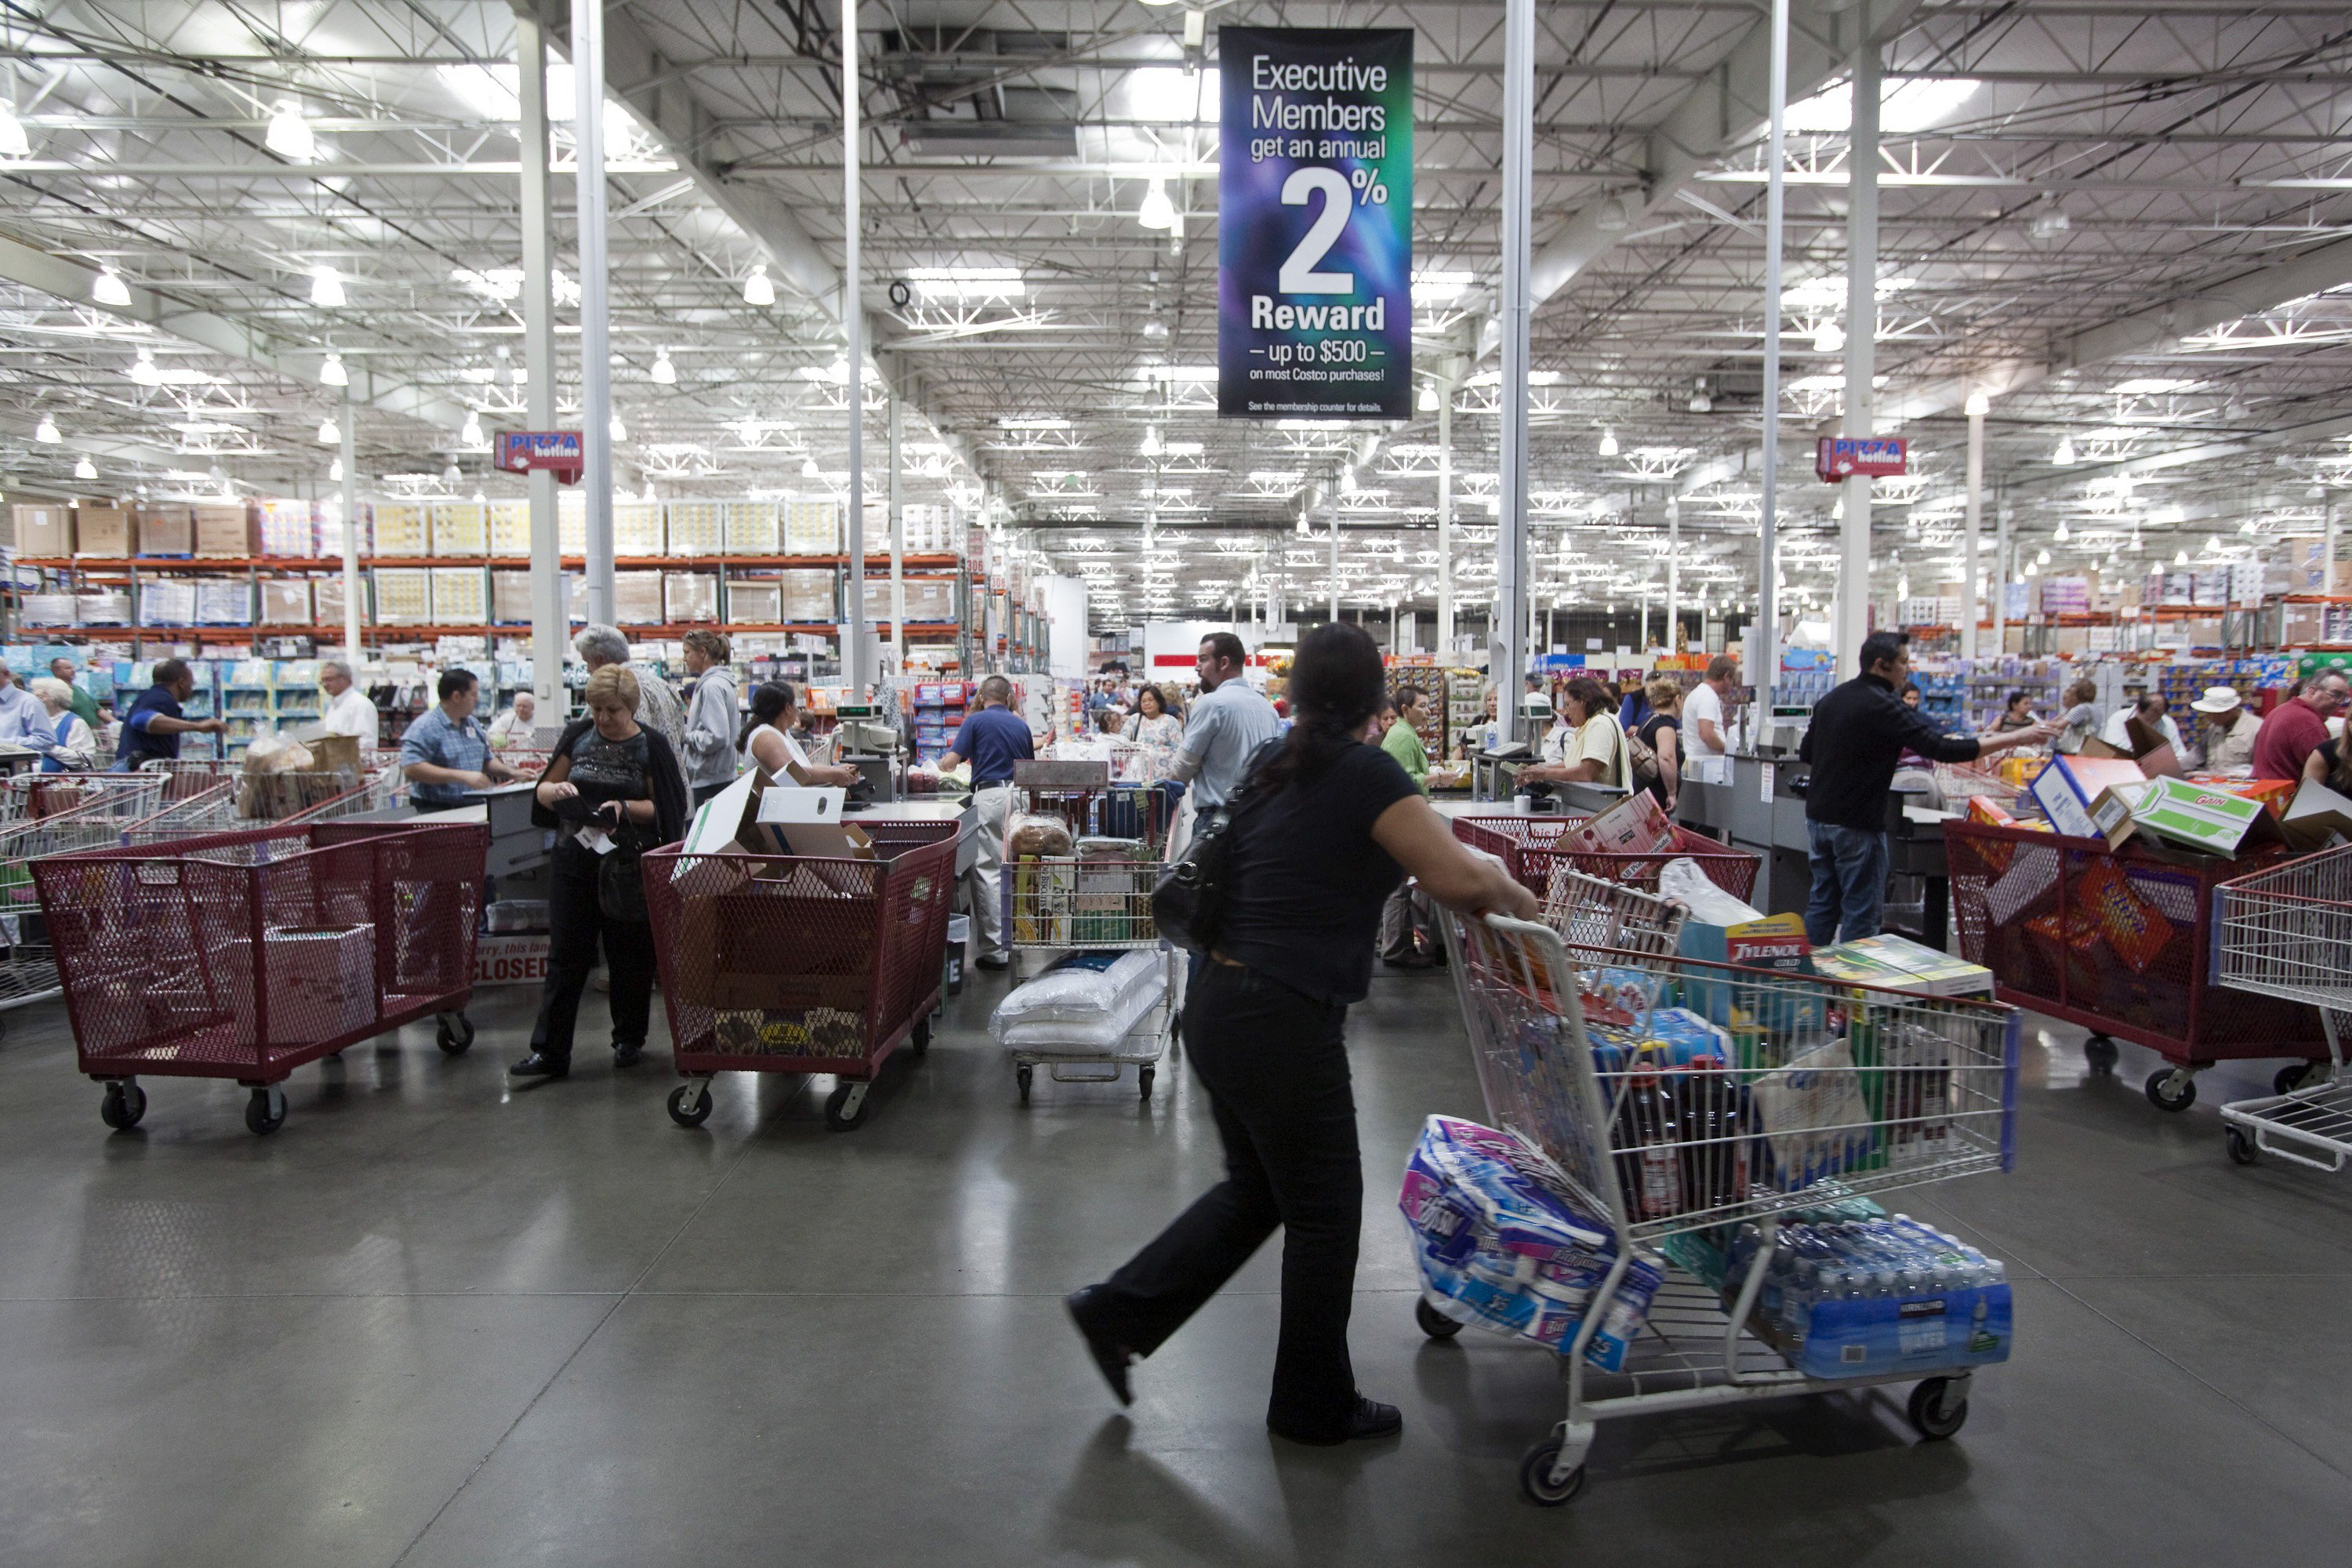 People Shop At The Costco Wholesale Store In Burbank Calif Said Wednesday It